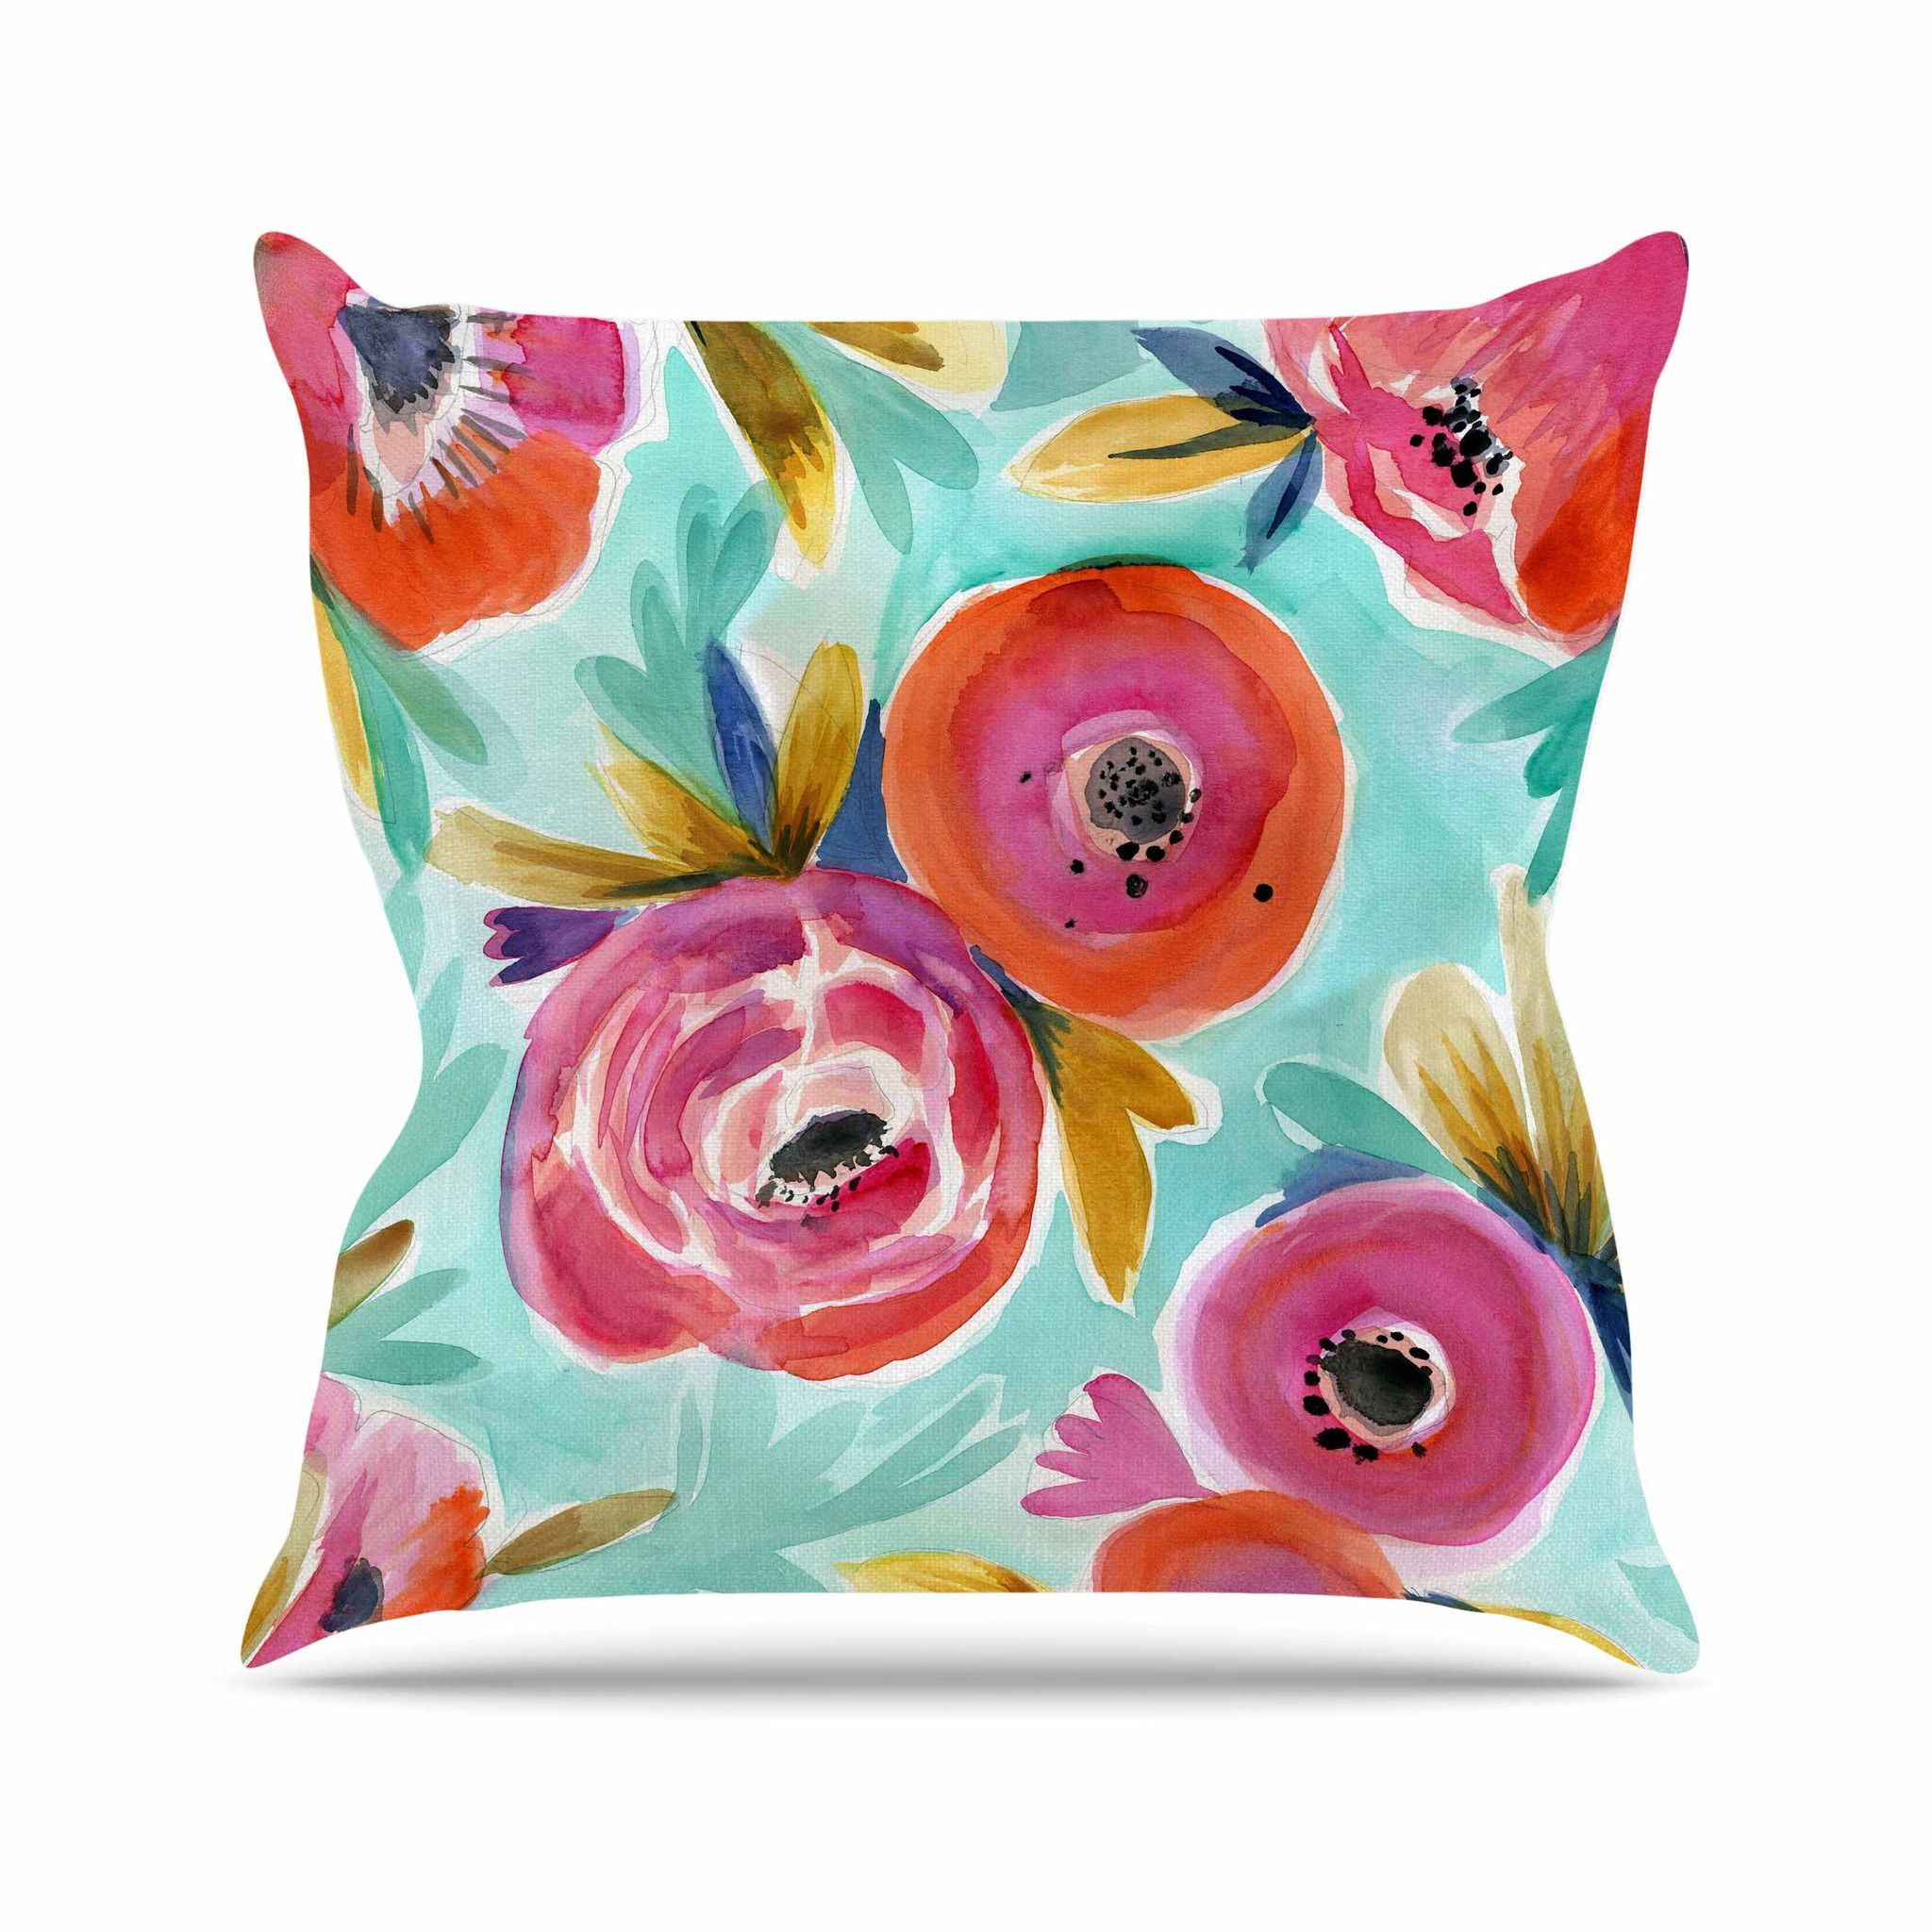 home decorative design pillow idea large black for tan throw teal navy aqua pillows gold green colored and nautical pink blue